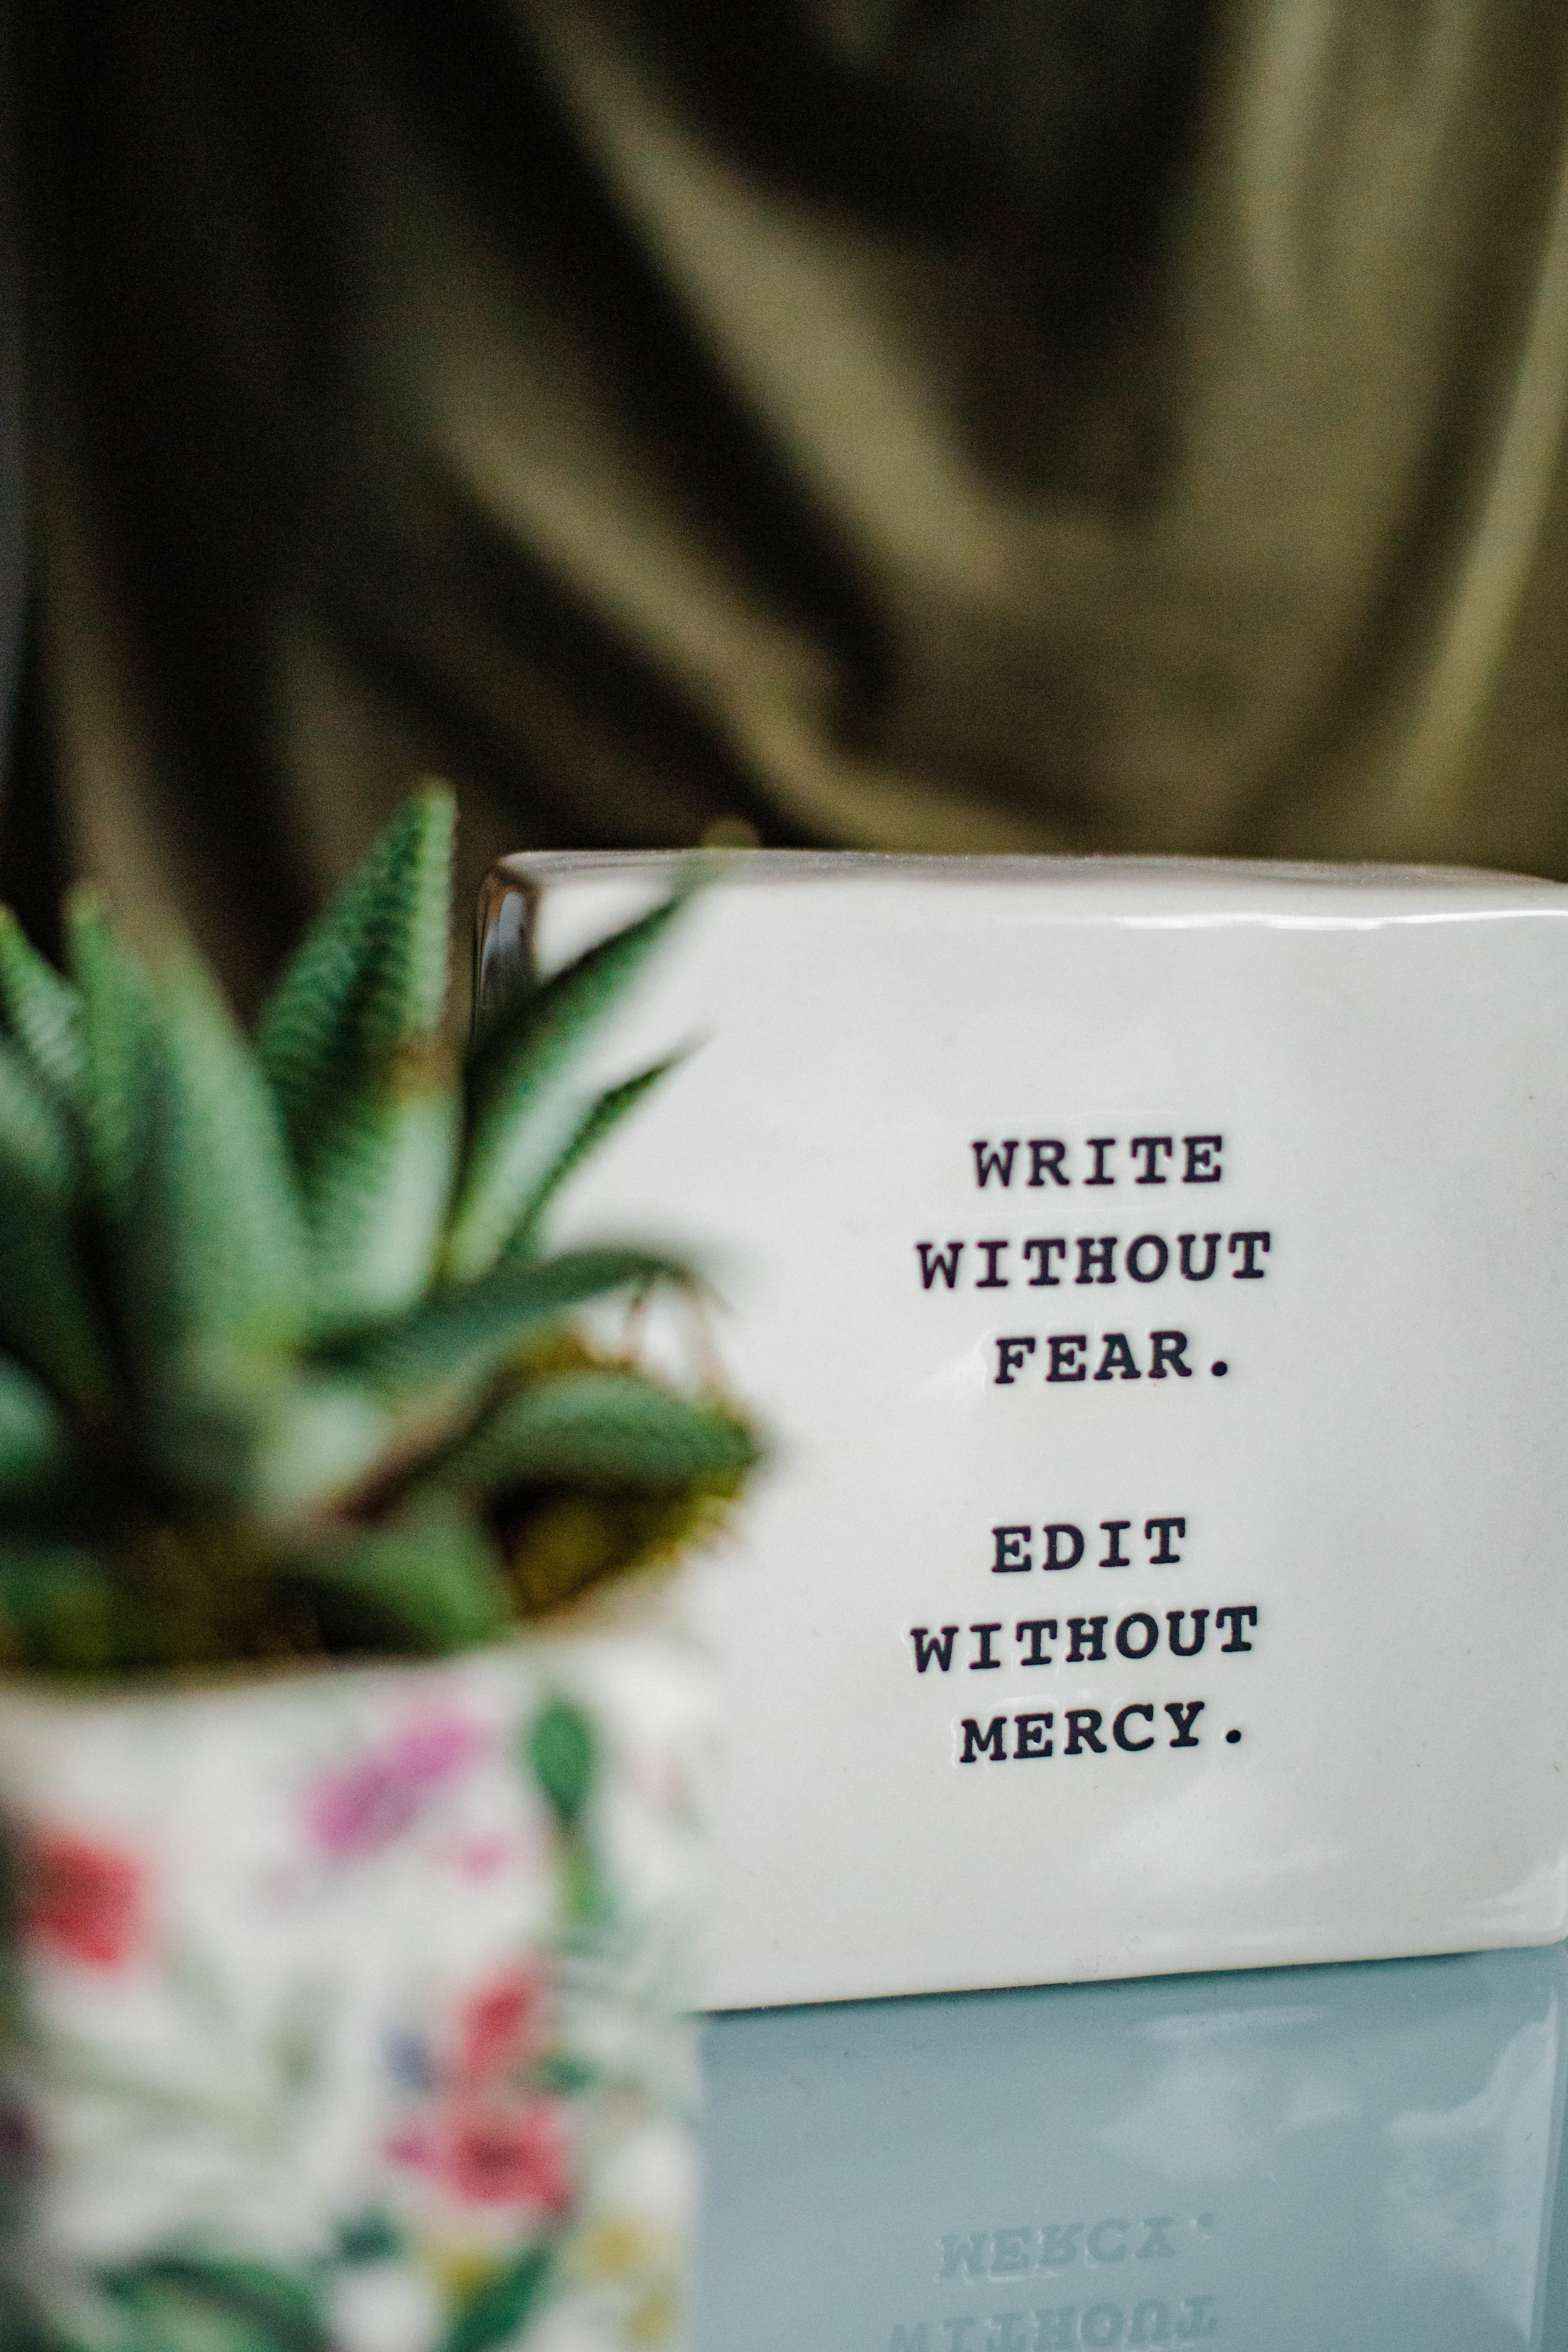 Write without fear, edit without mercy. How I overcame my fear of publishing online. Thanks to Tim Denning and Todd Brison's Medium Bad-Assery. Writing Advice for aspiring writers on Medium.